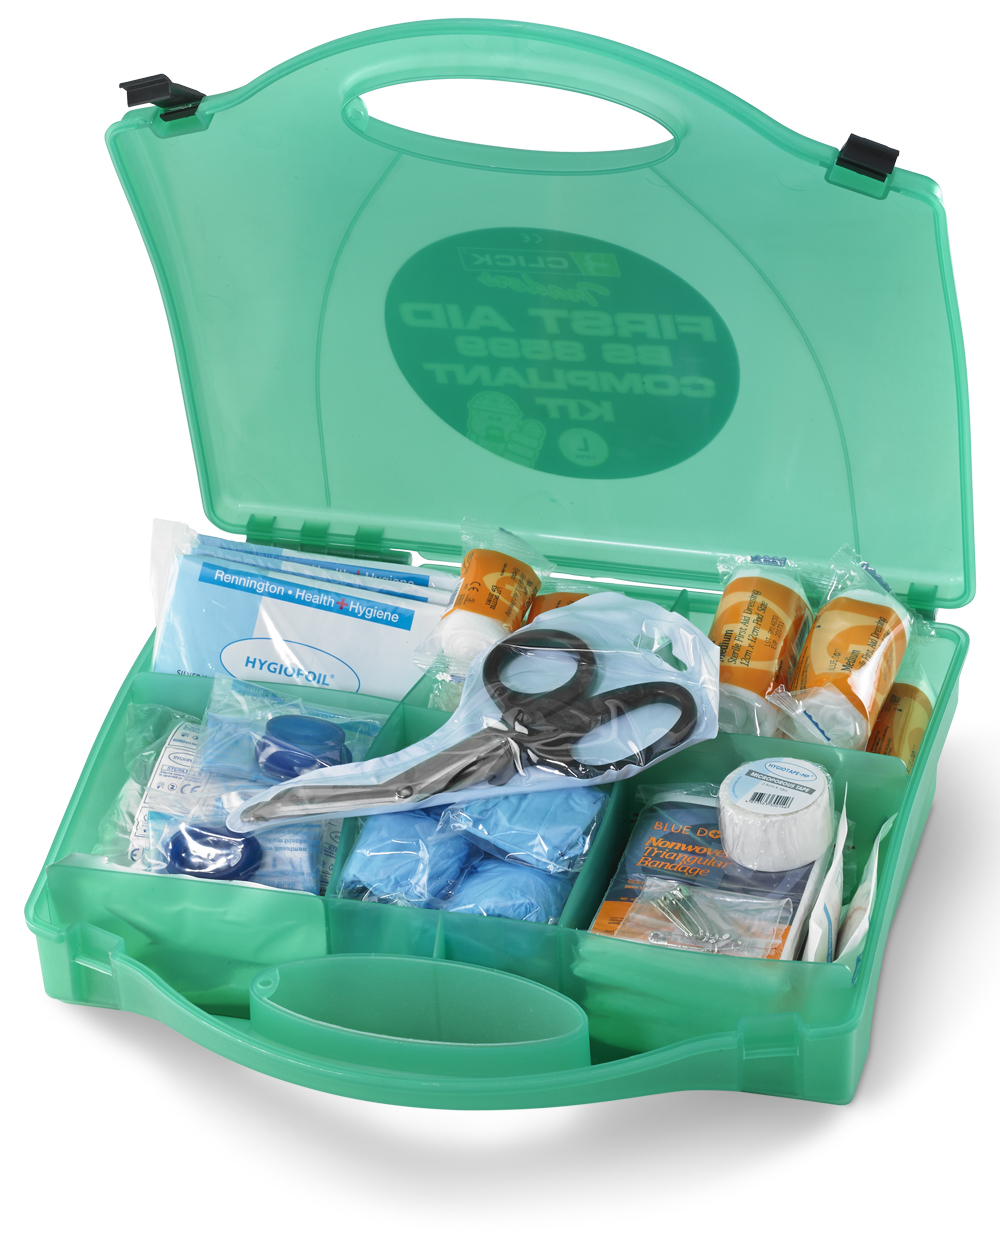 DELTA BS8599-1 LARGE WORKPLACE FIRST AID KIT - CM1806